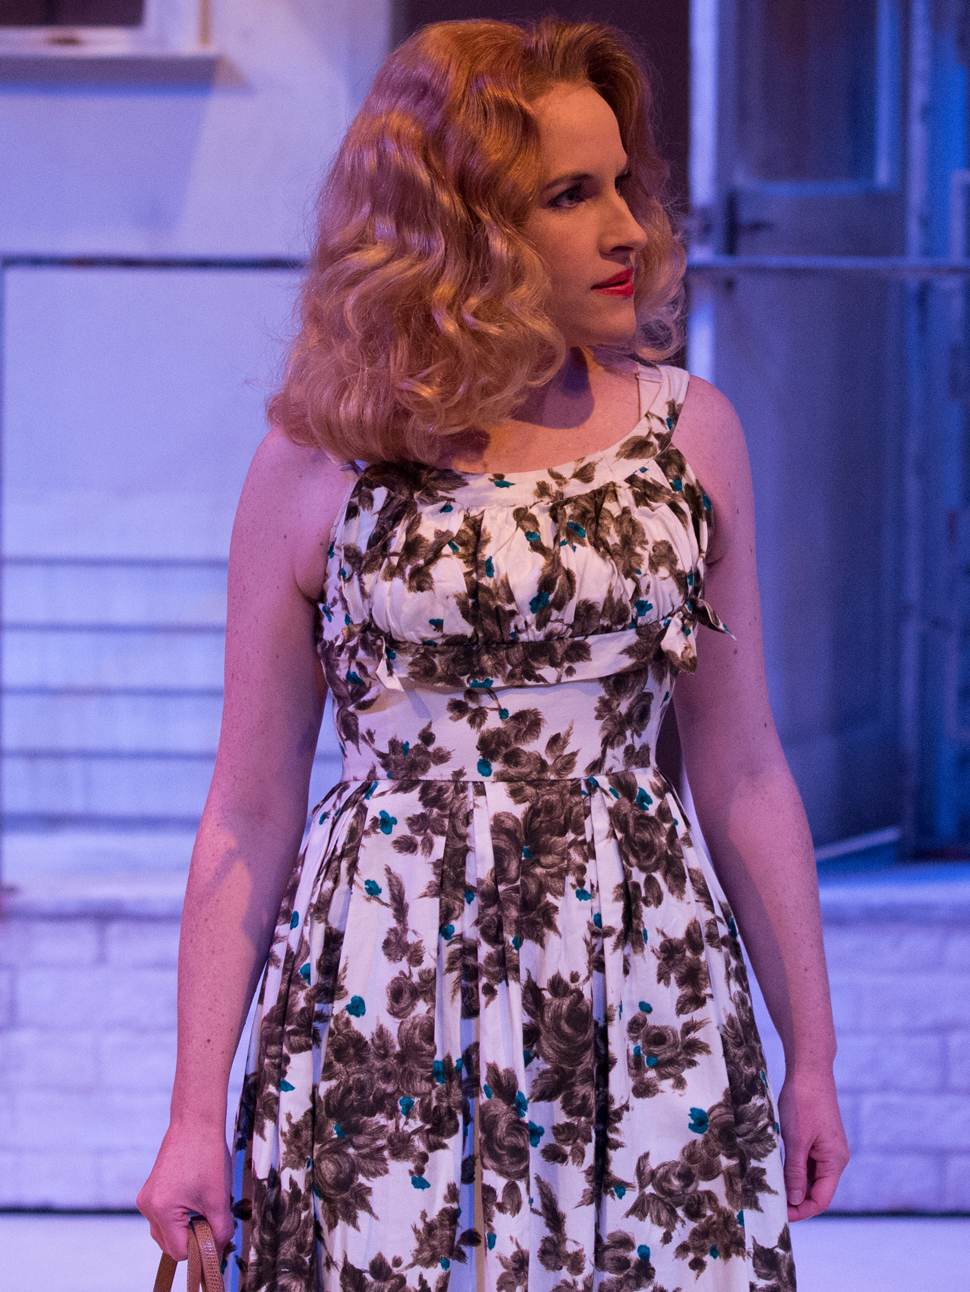 Kate in Jasper Jones at Belvoir. She also adapted it from the novel by Craig Silvey